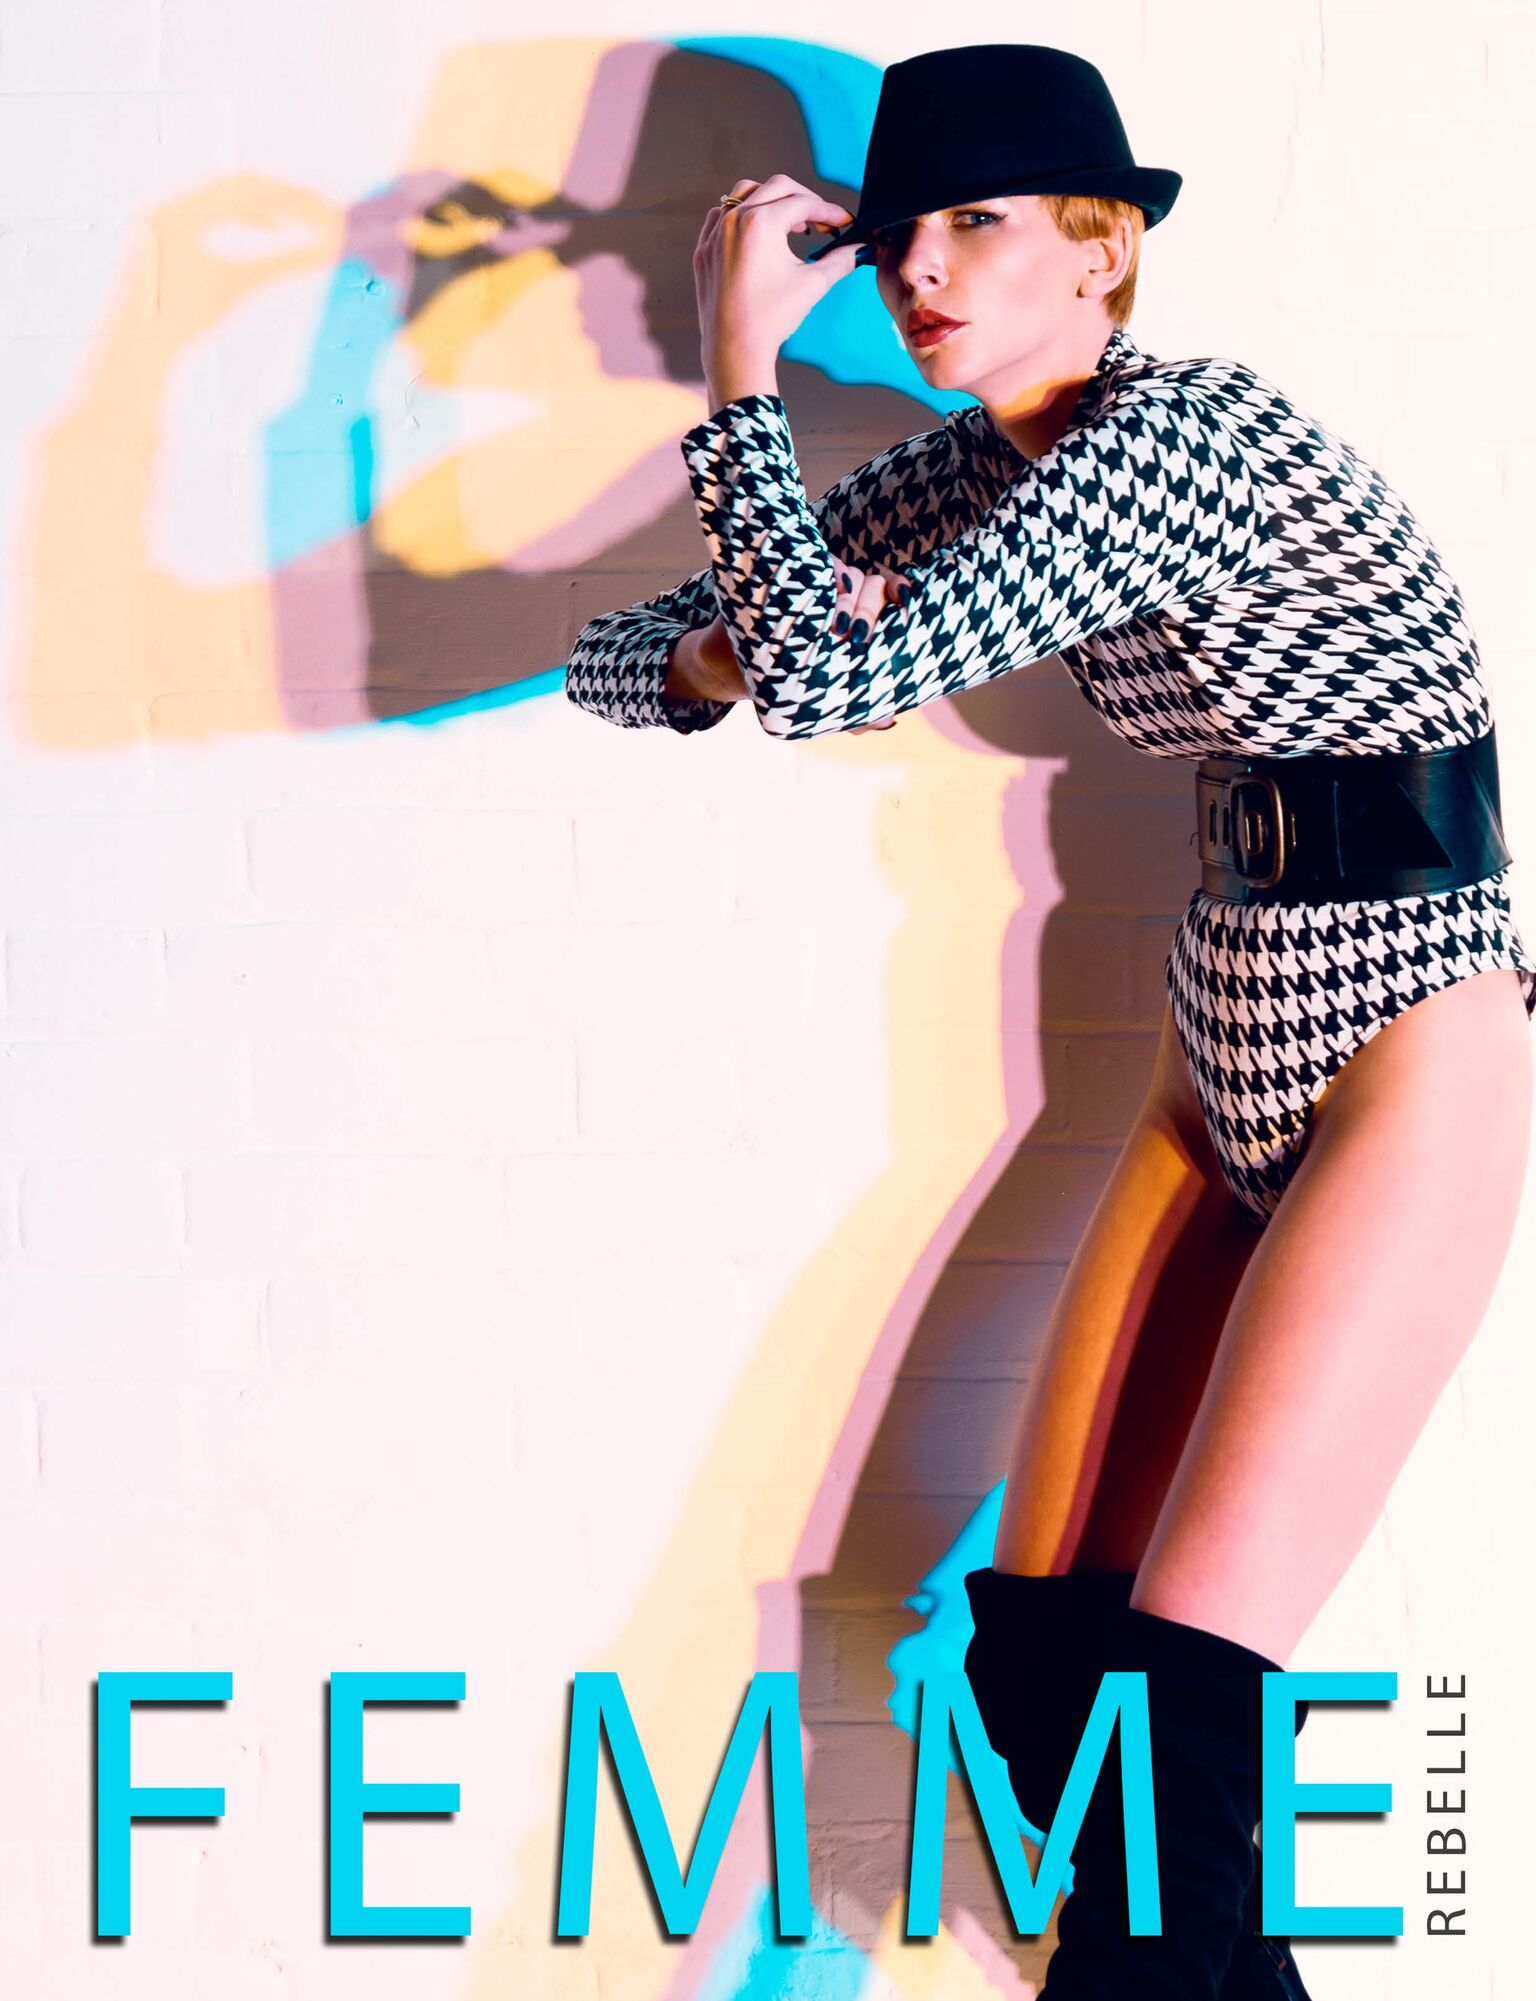 thairapy featured in Femme Rebelle 2018